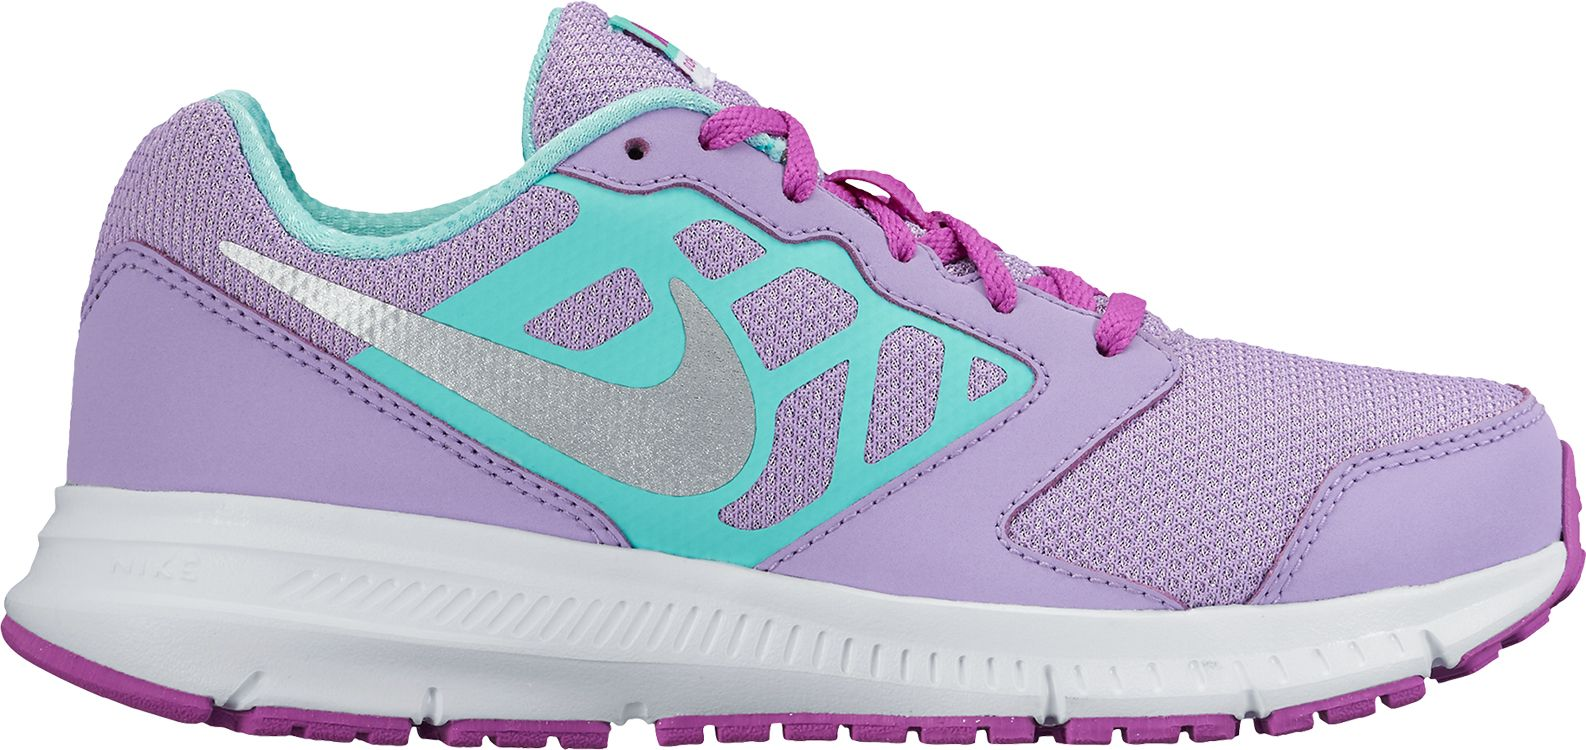 Kids' Nike Running Shoes | DICK'S Sporting Goods